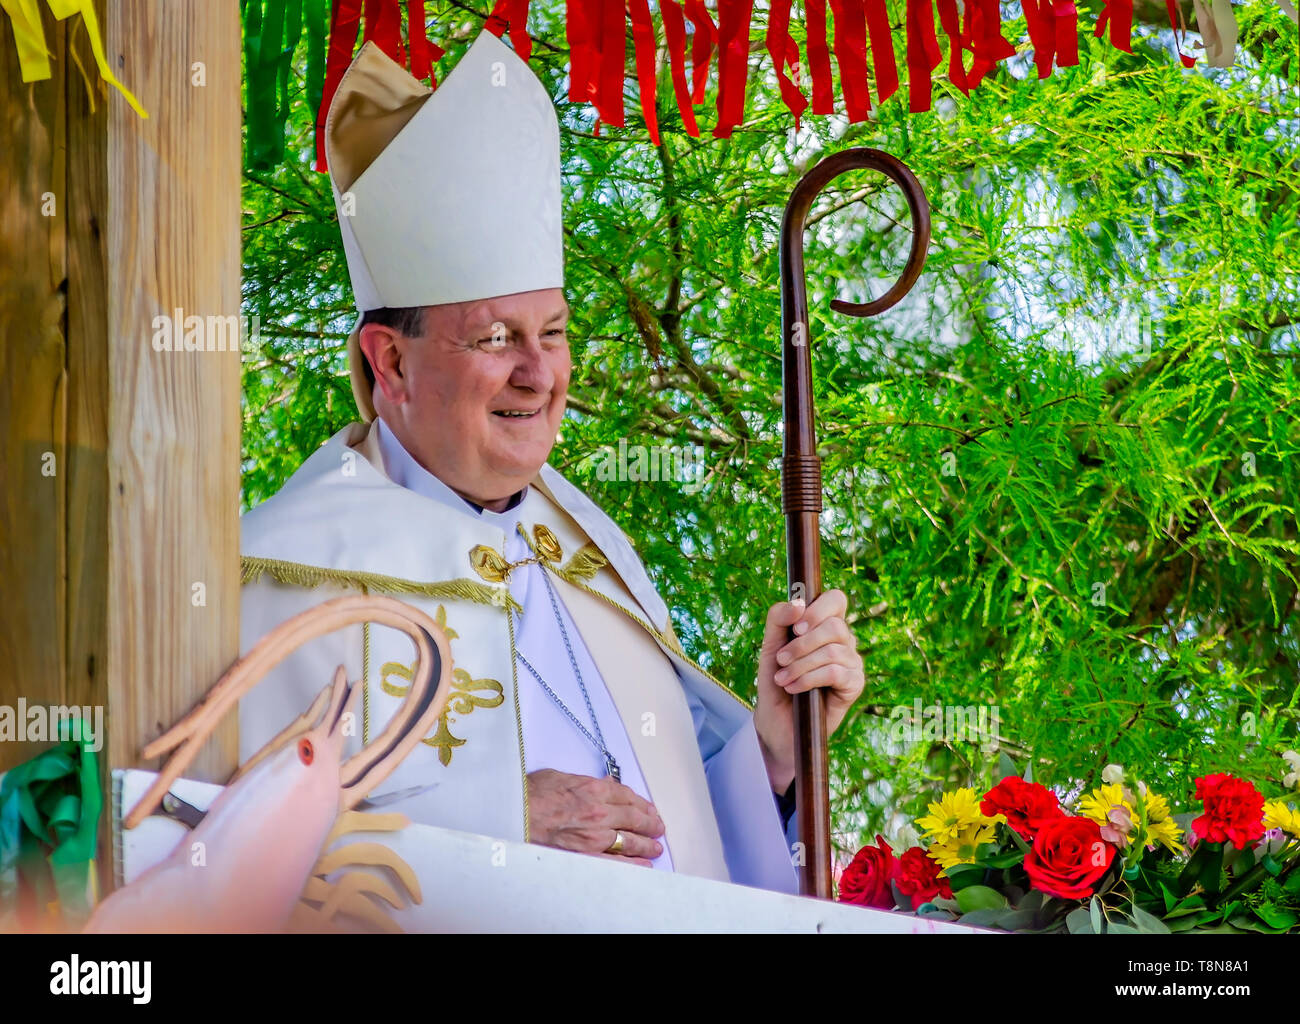 Catholic Archbishop Thomas J. Rodi waits to deliver the blessing of the boats during the 70th annual Blessing of the Fleet in Bayou La Batre, Alabama. Stock Photo